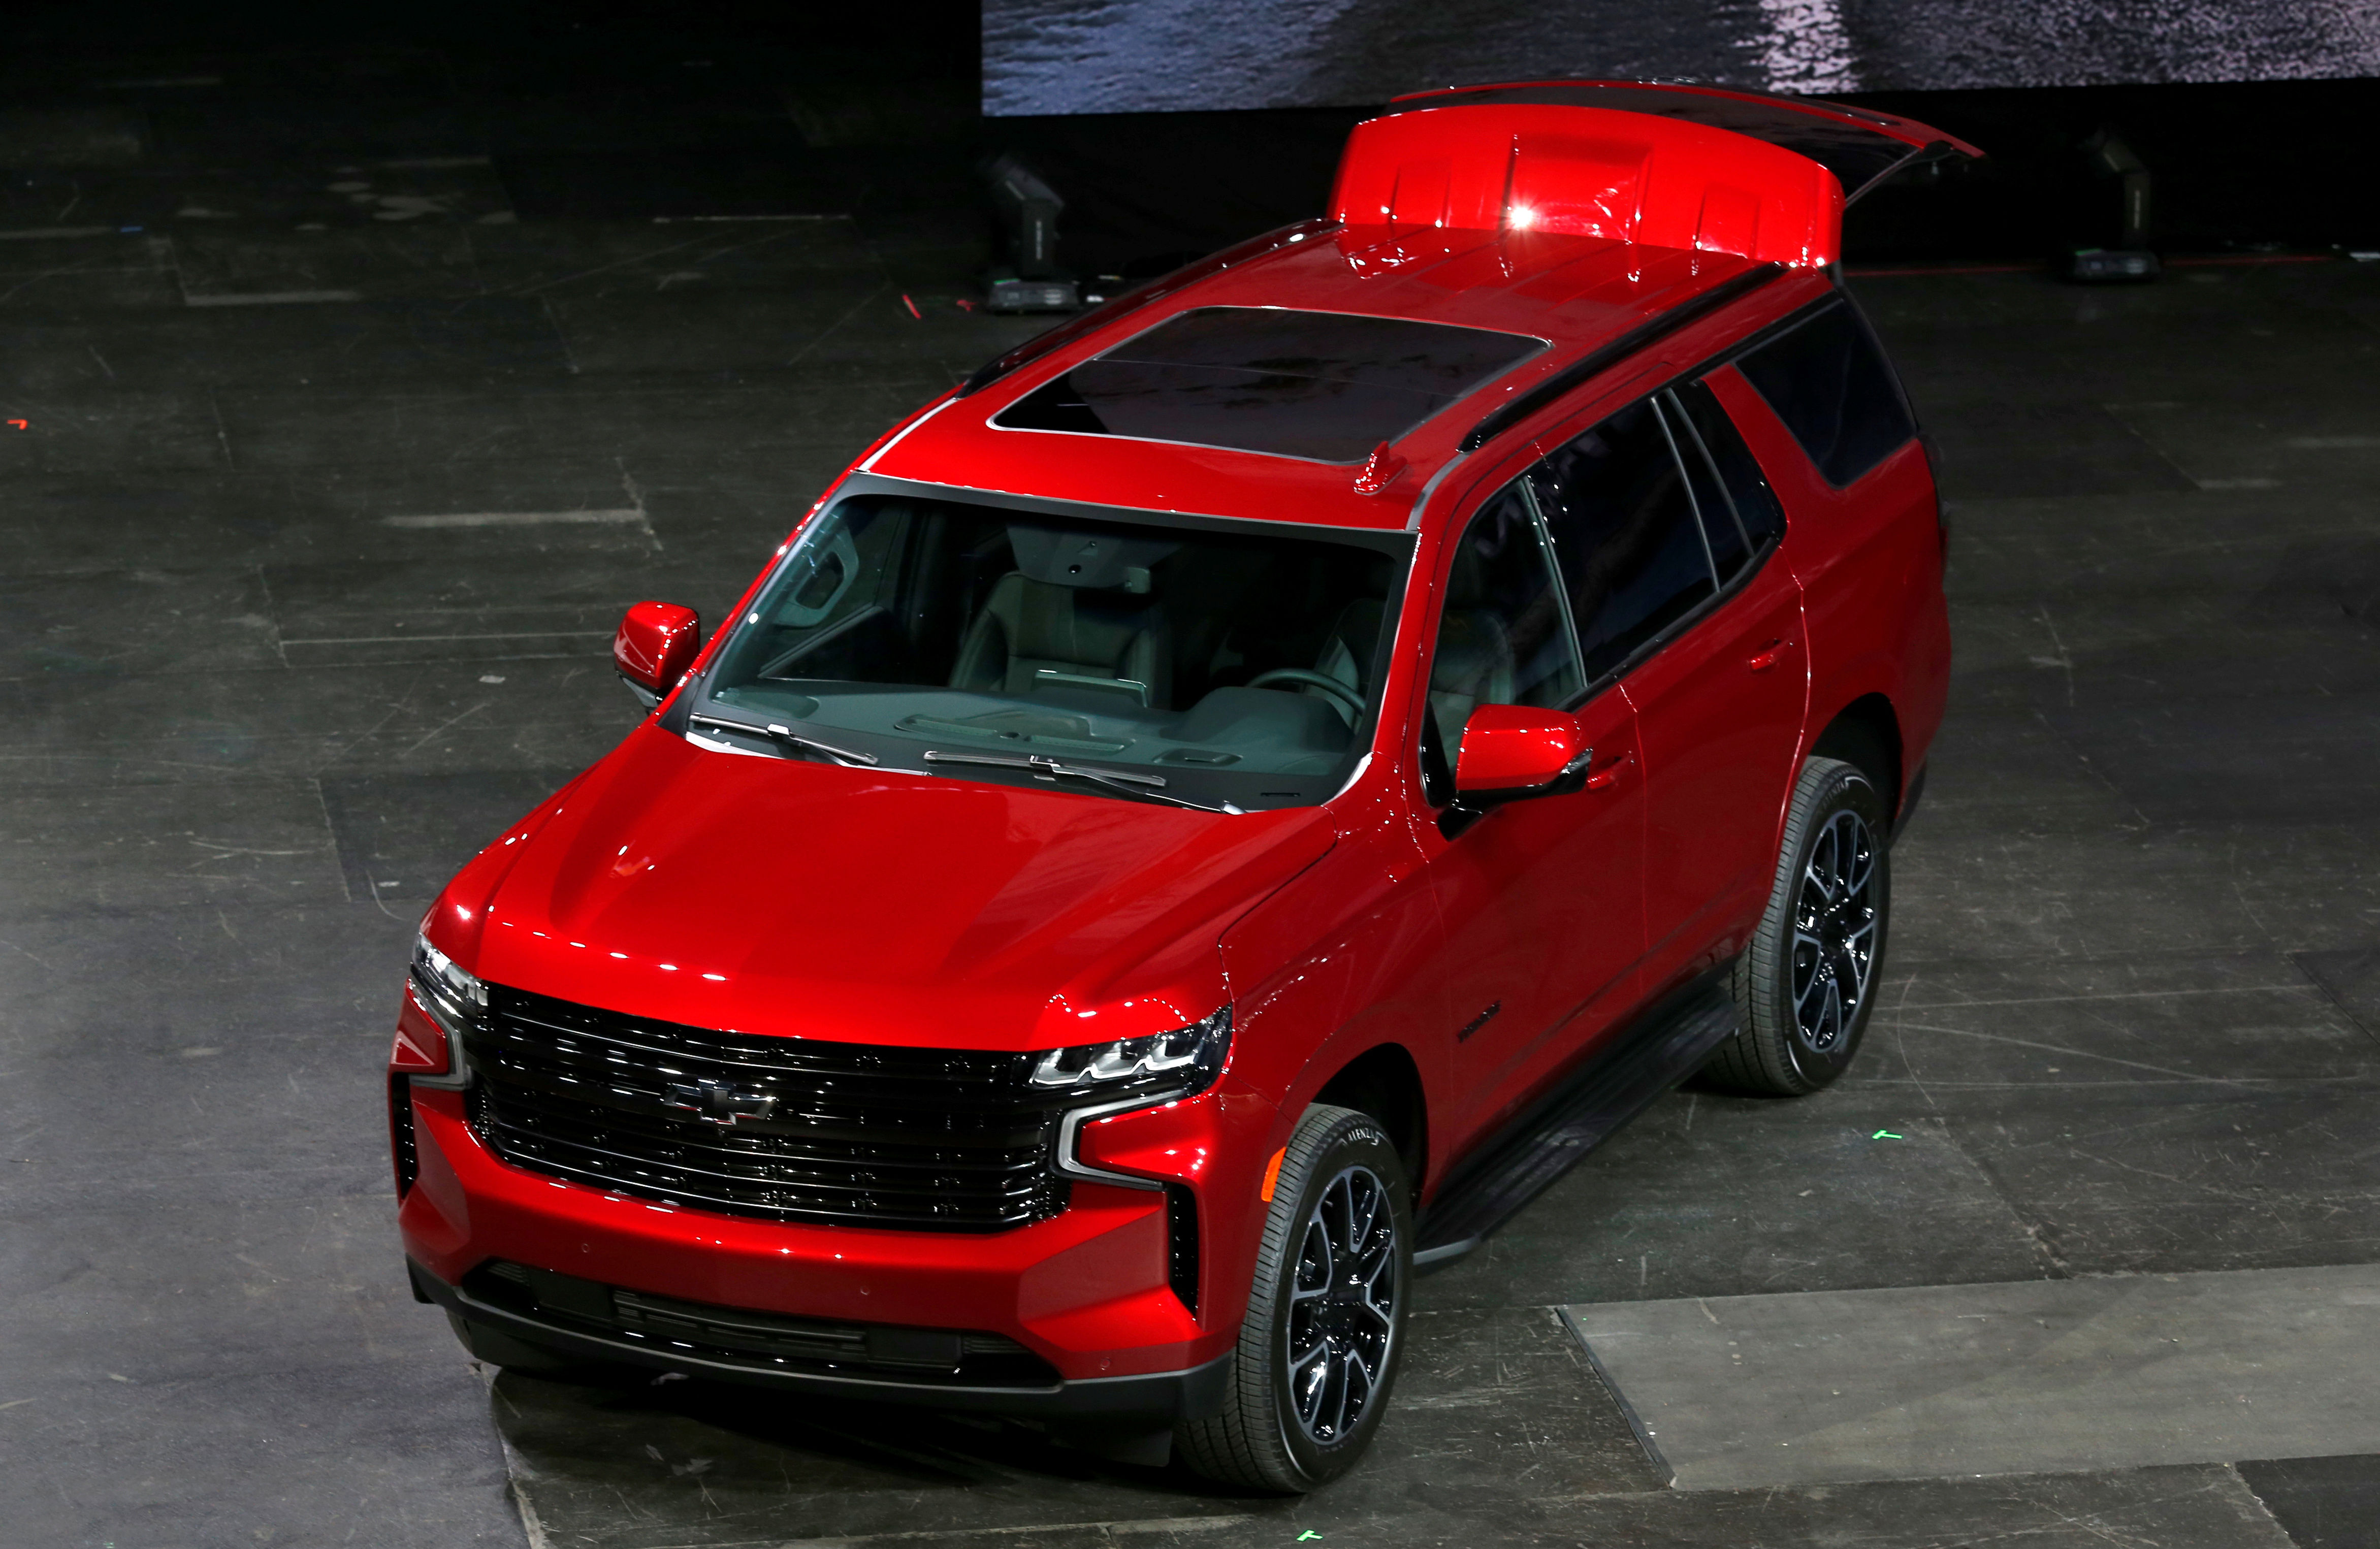 The 2021 Chevrolet Tahoe is 6.7 inches longer than the current Tahoe (REUTERS)